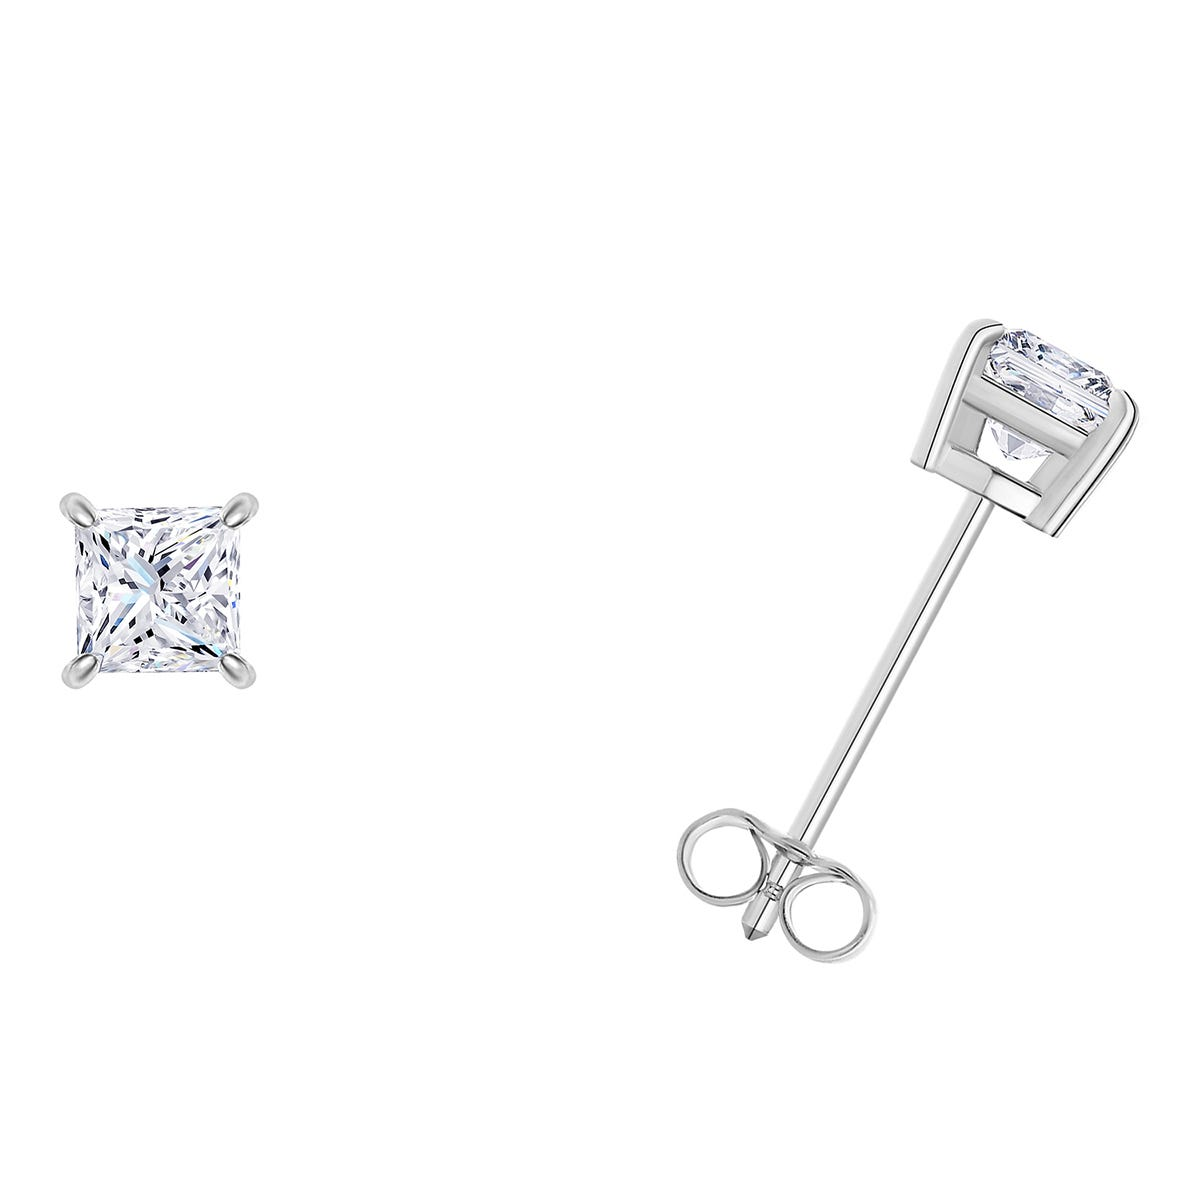 1/5 CTTW Princess Cut Diamond Solitaire Stud Earrings in 14K White Gold (I-I2) IGI Certified